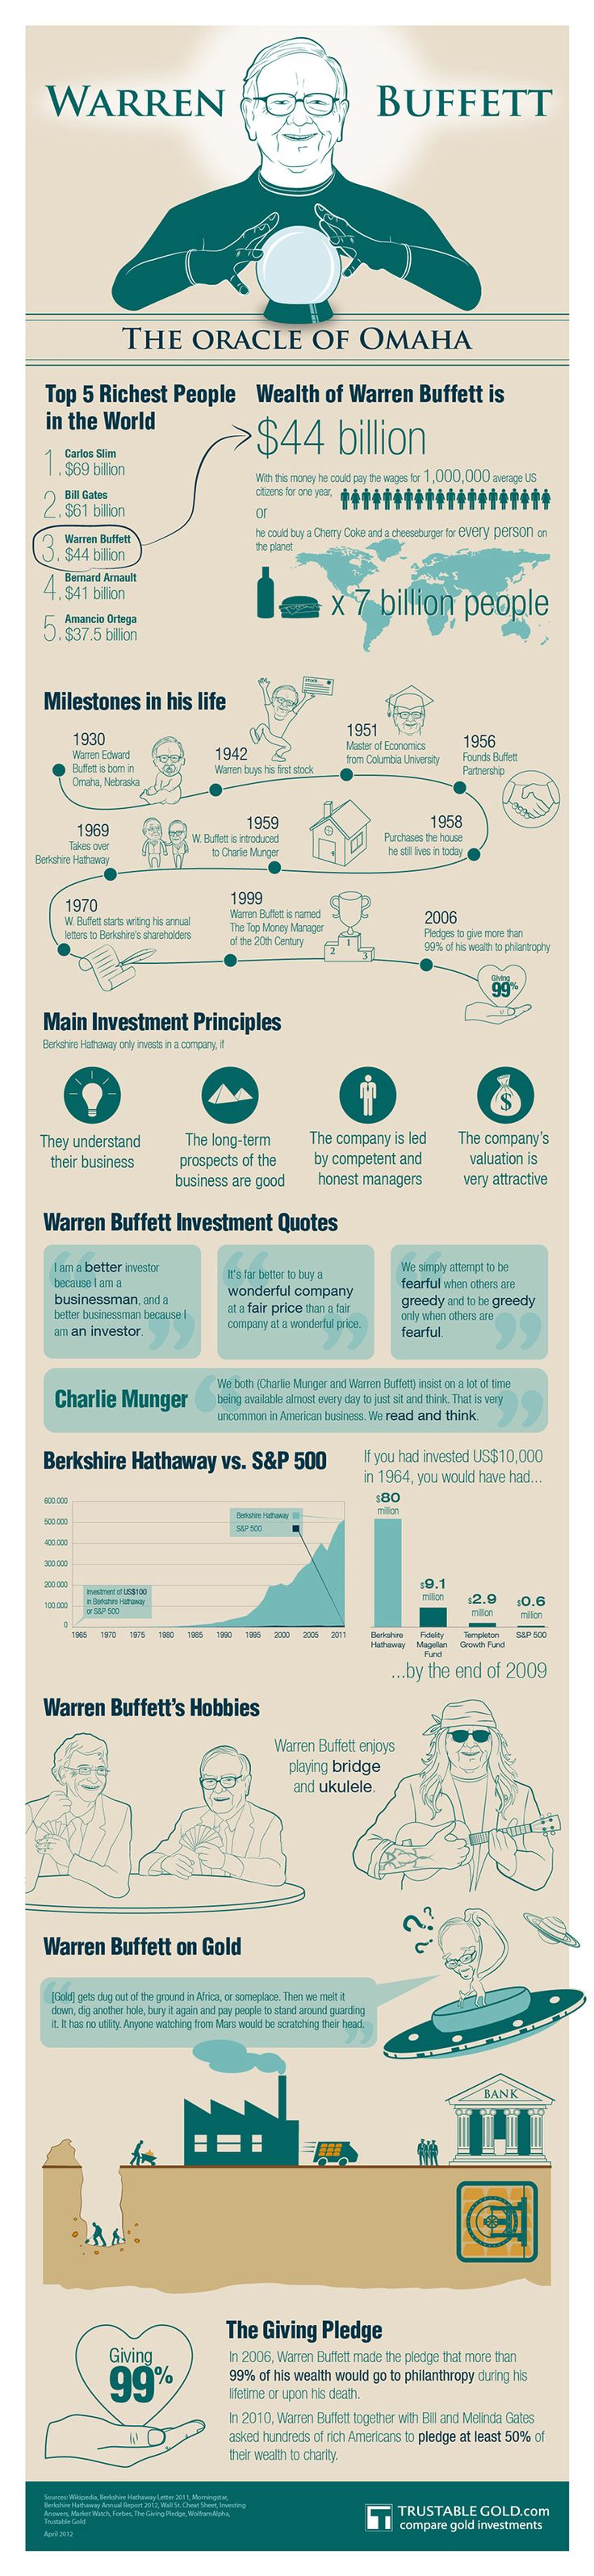 Everything you need to know about Warren Buffett infographic